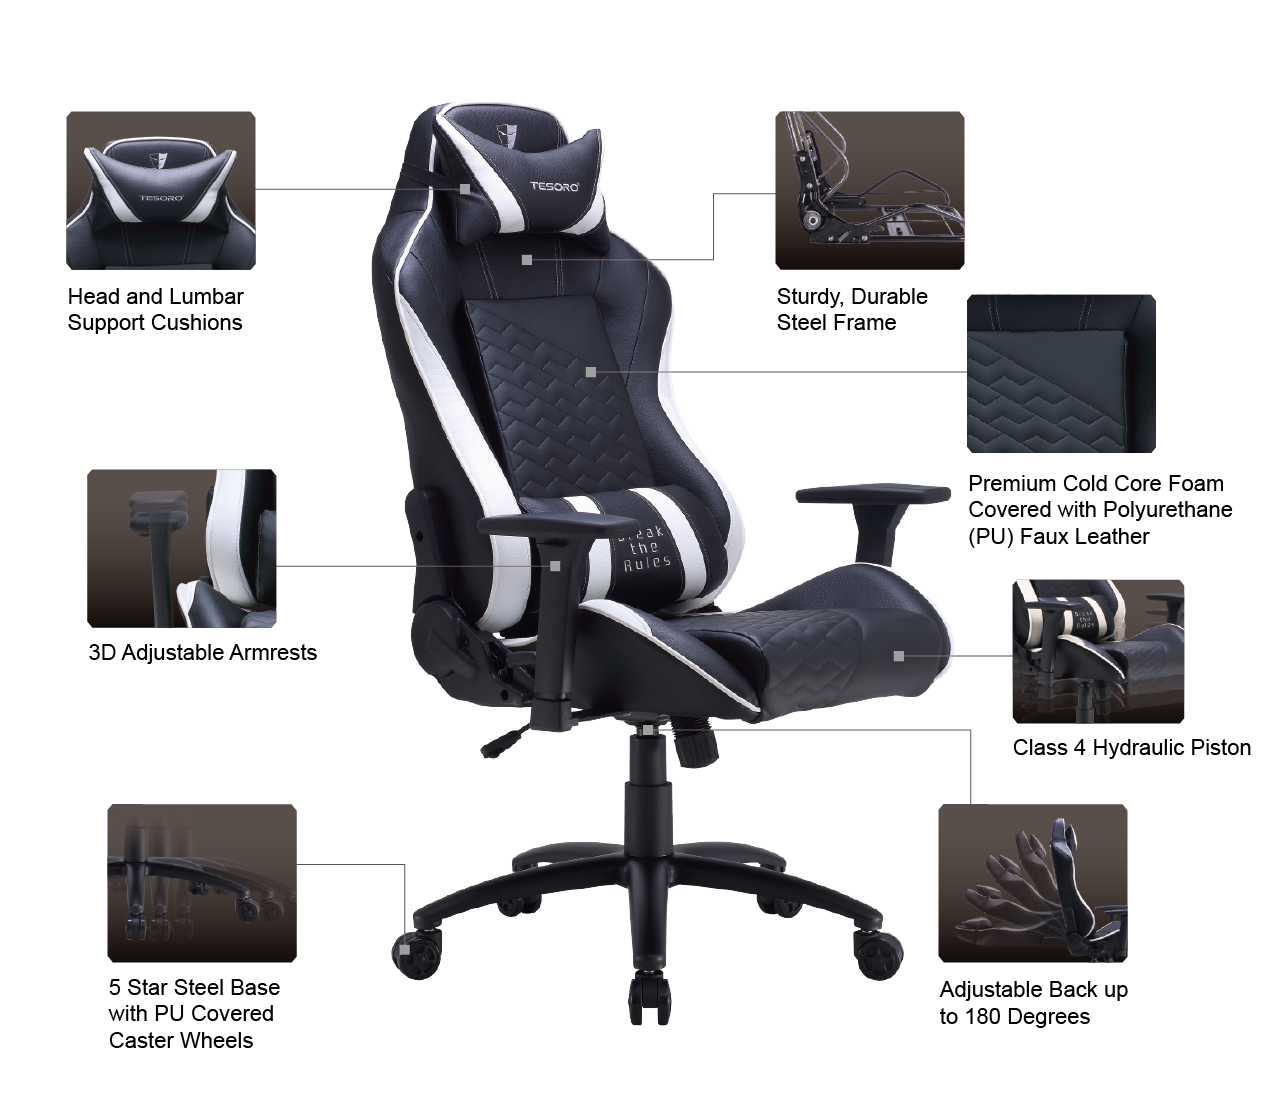 Wondrous Tesoro Opens New Product Line The Zone Balance Gaming Chair Cjindustries Chair Design For Home Cjindustriesco